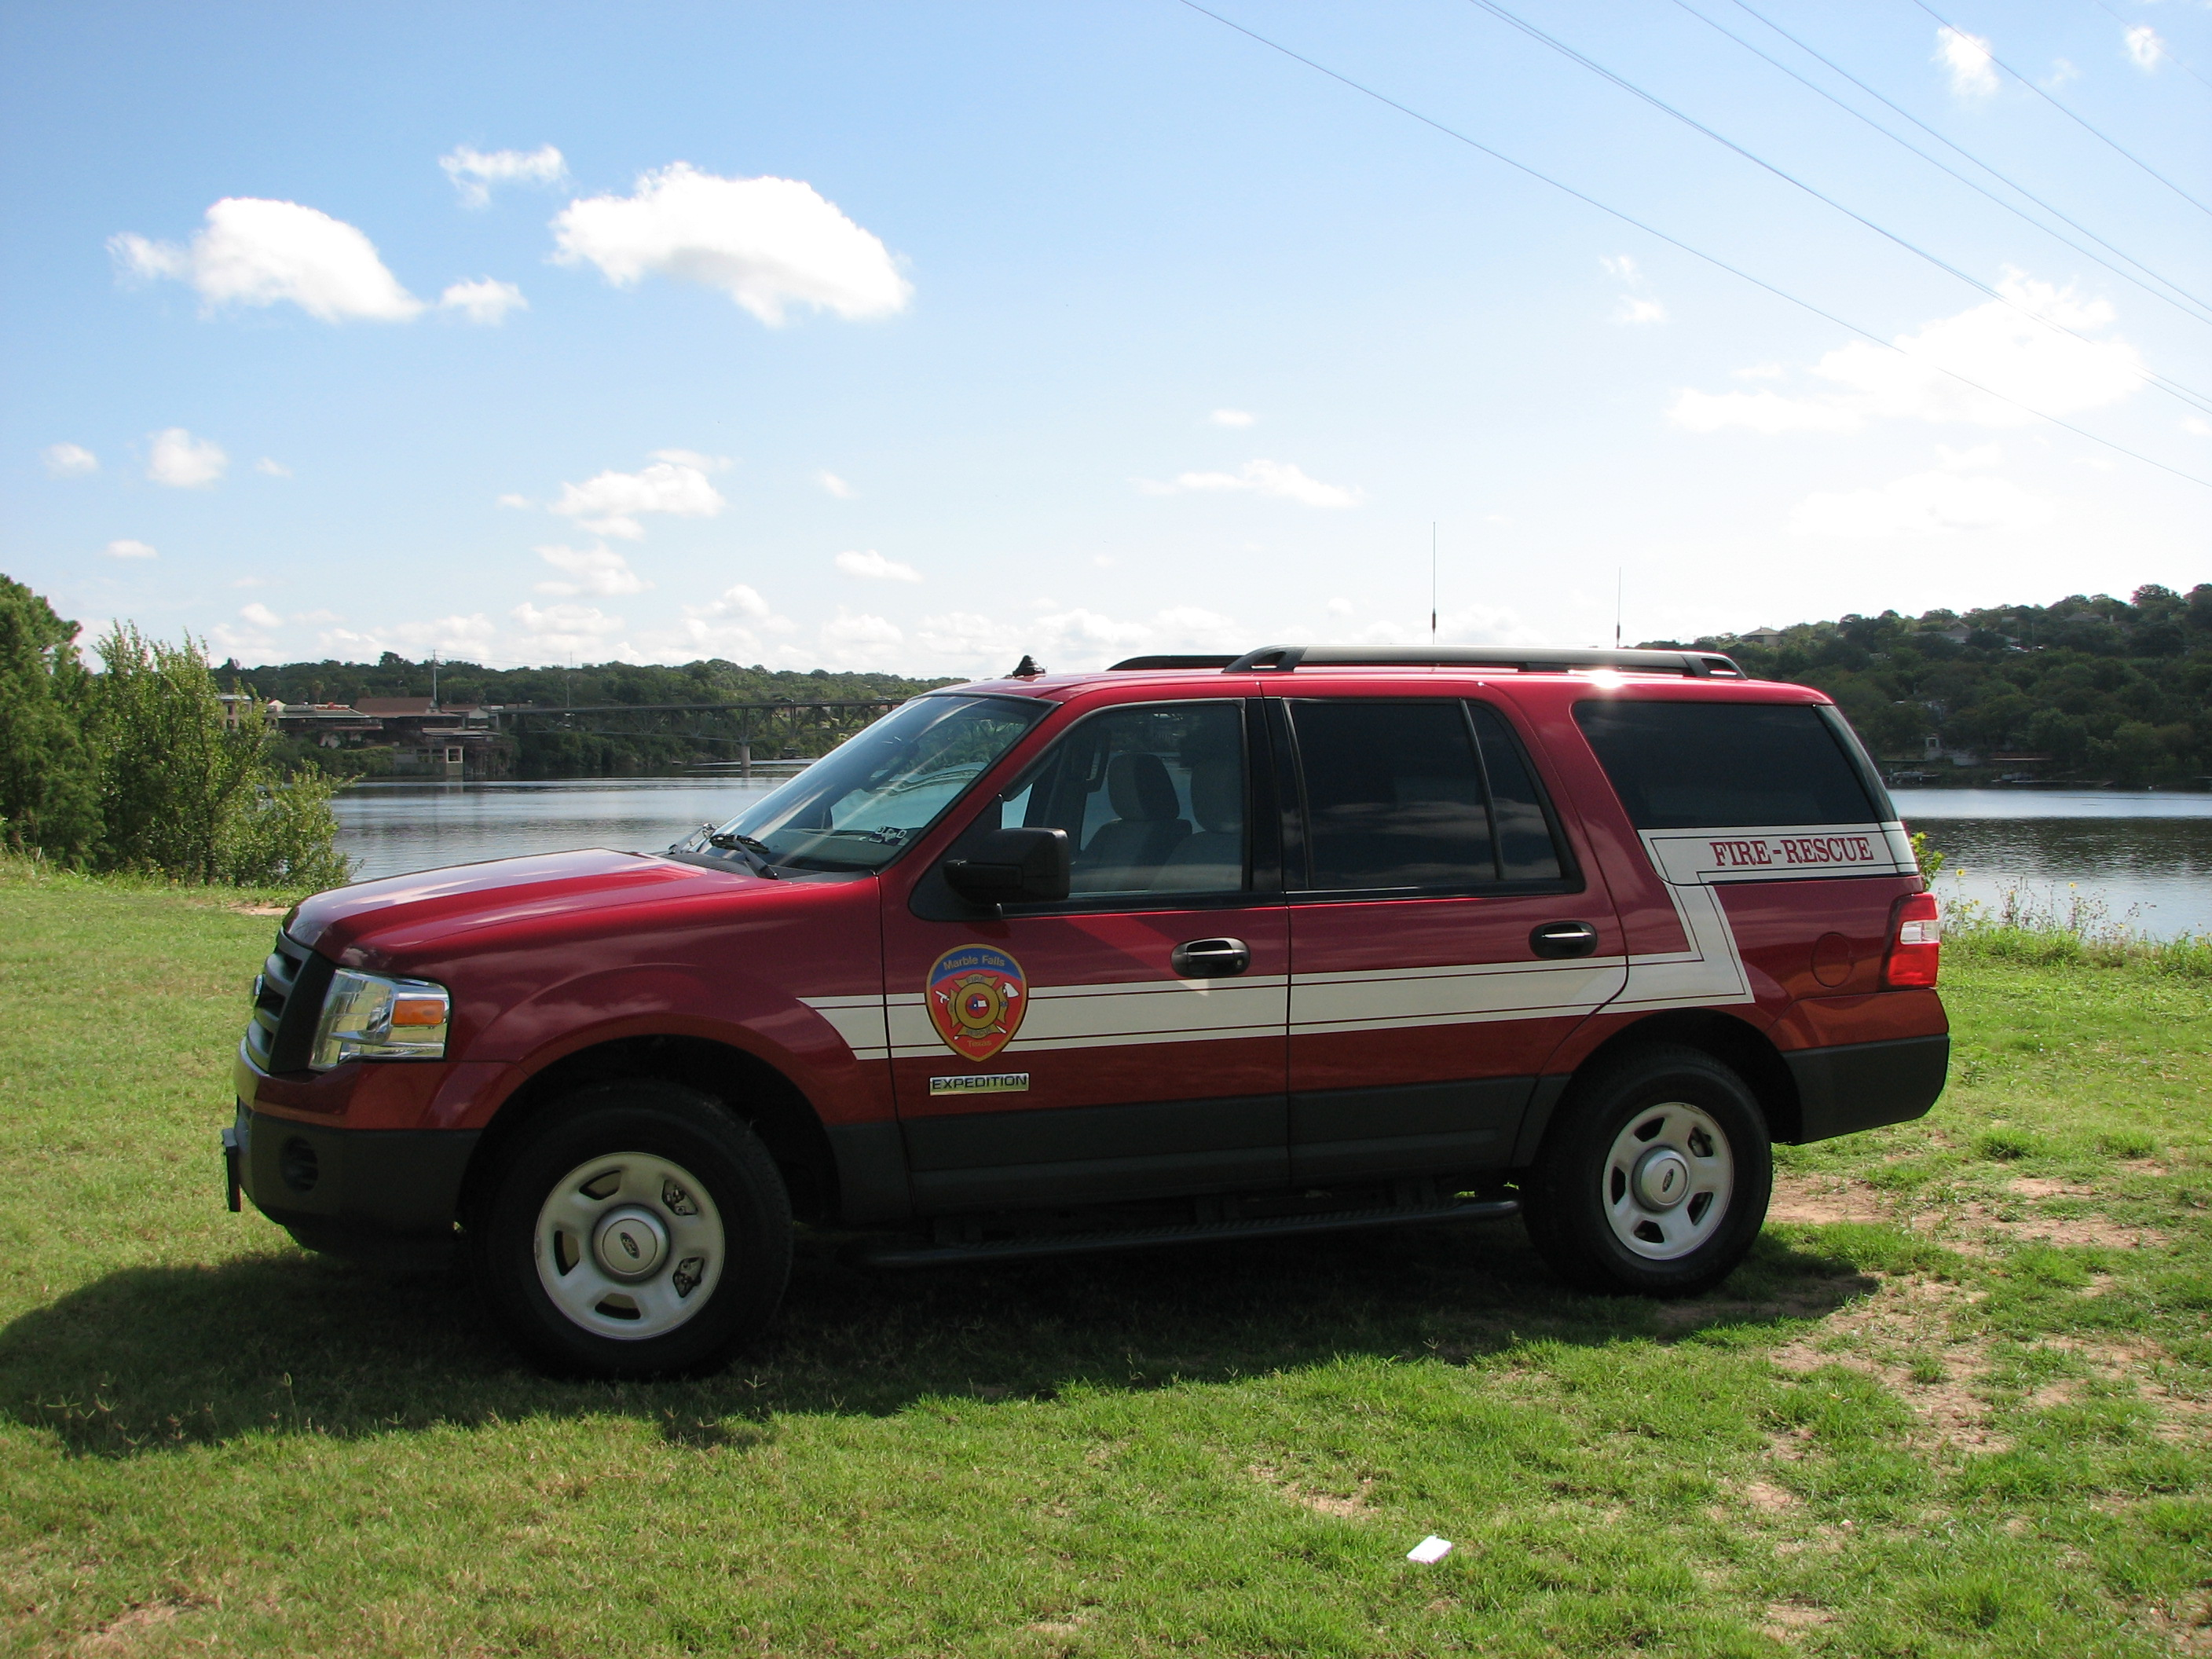 Fire Marshal One, a 2006 Ford Expedition